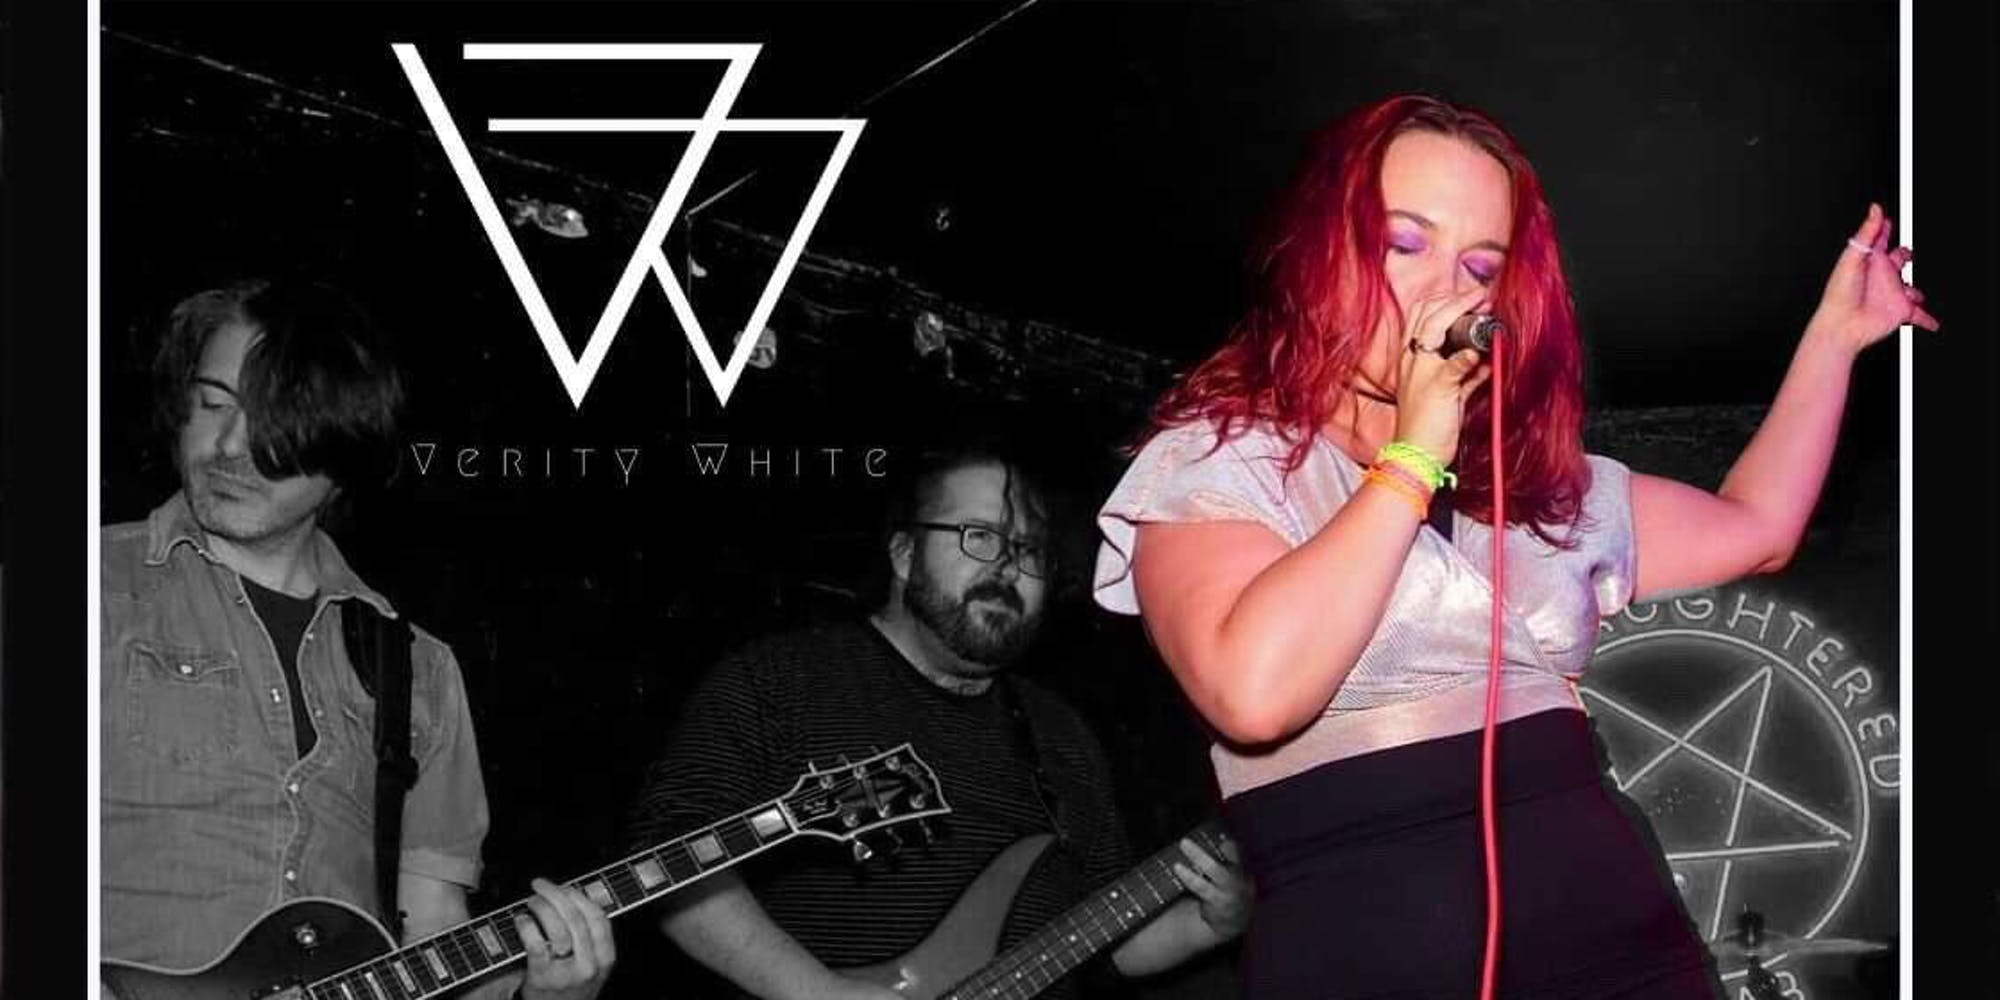 Verity White RECLAIM SET FIRE Tour plus support from Martyn Peters at The Fiddler's Elbow promotional image